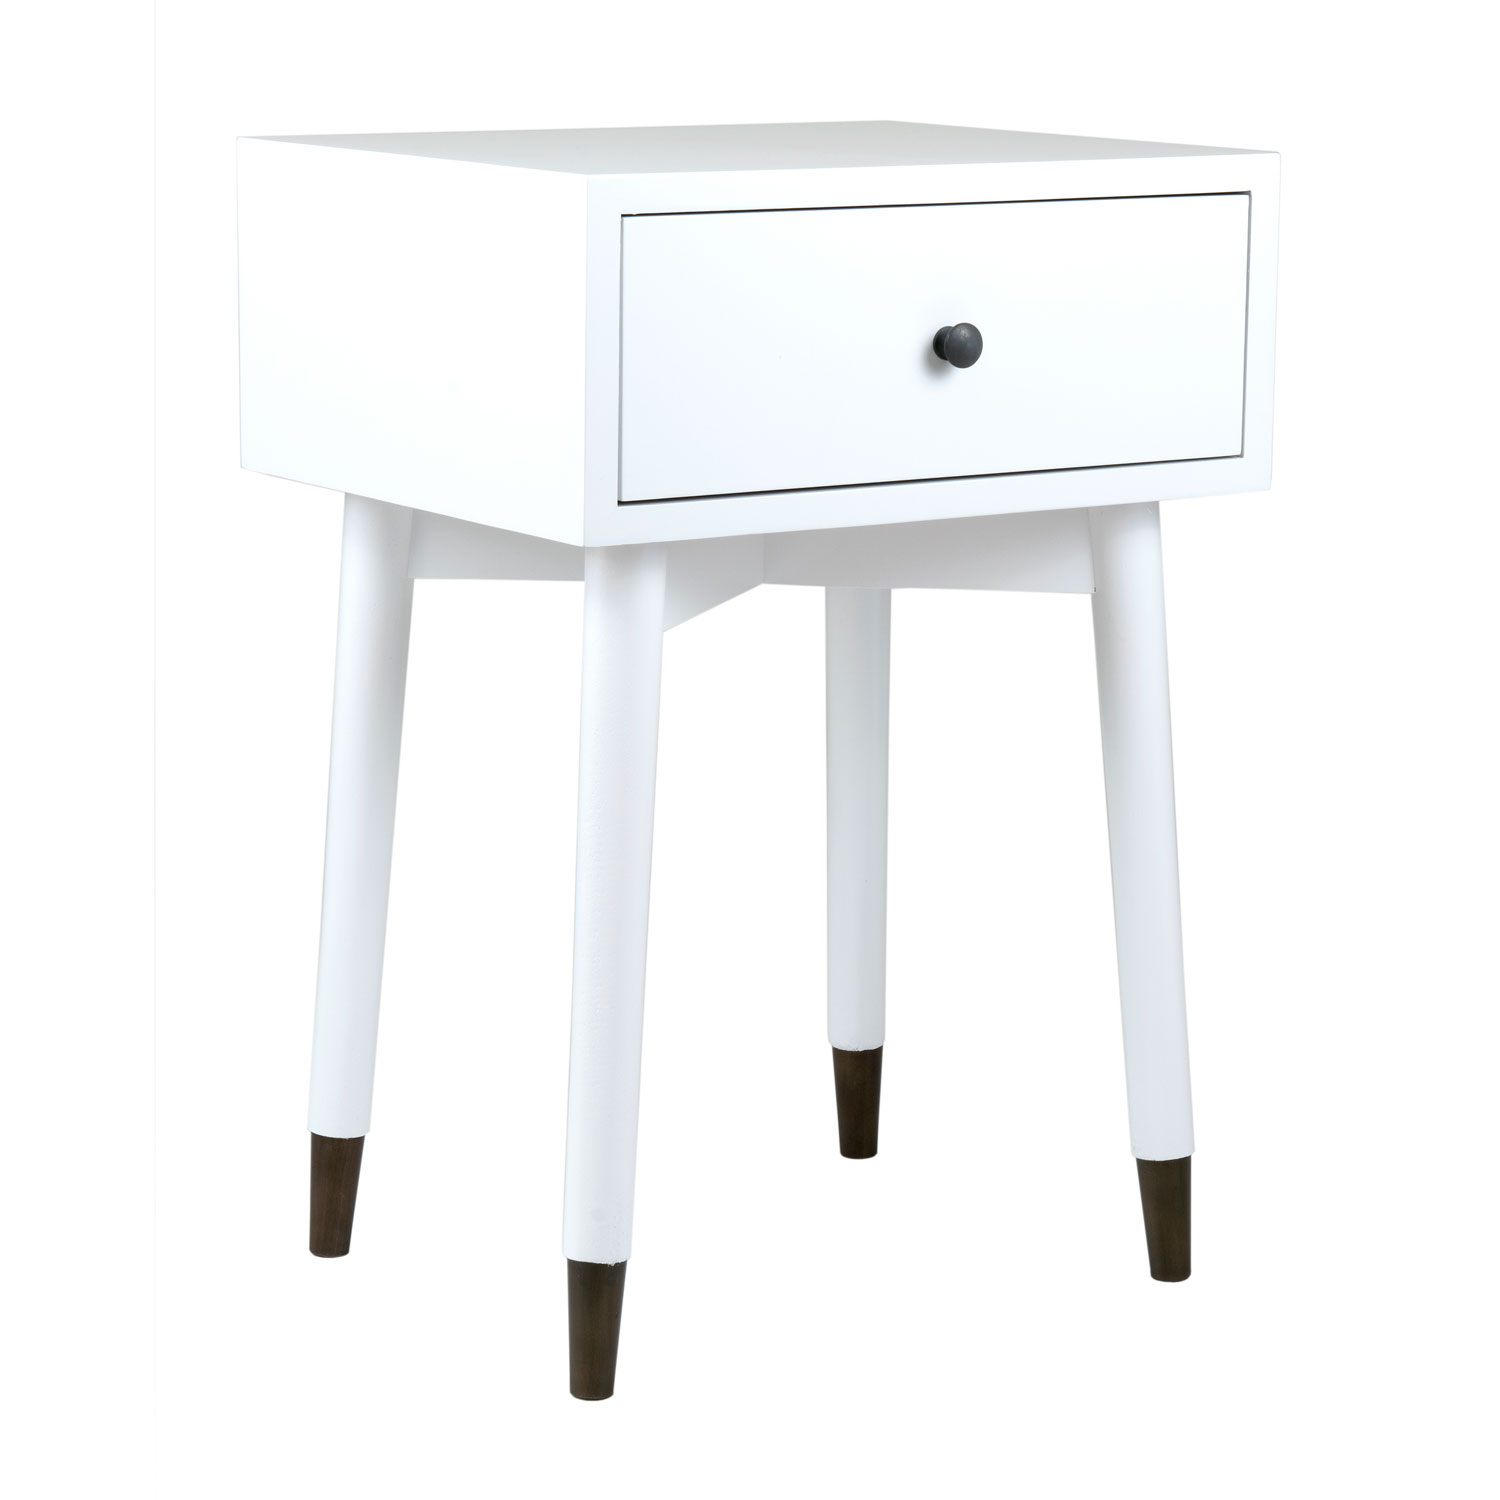 east main weeks white acacia wood square accent table hover zoom coffee calgary popular tables dark end with storage big umbrellas for shade penny furniture rectangular patio